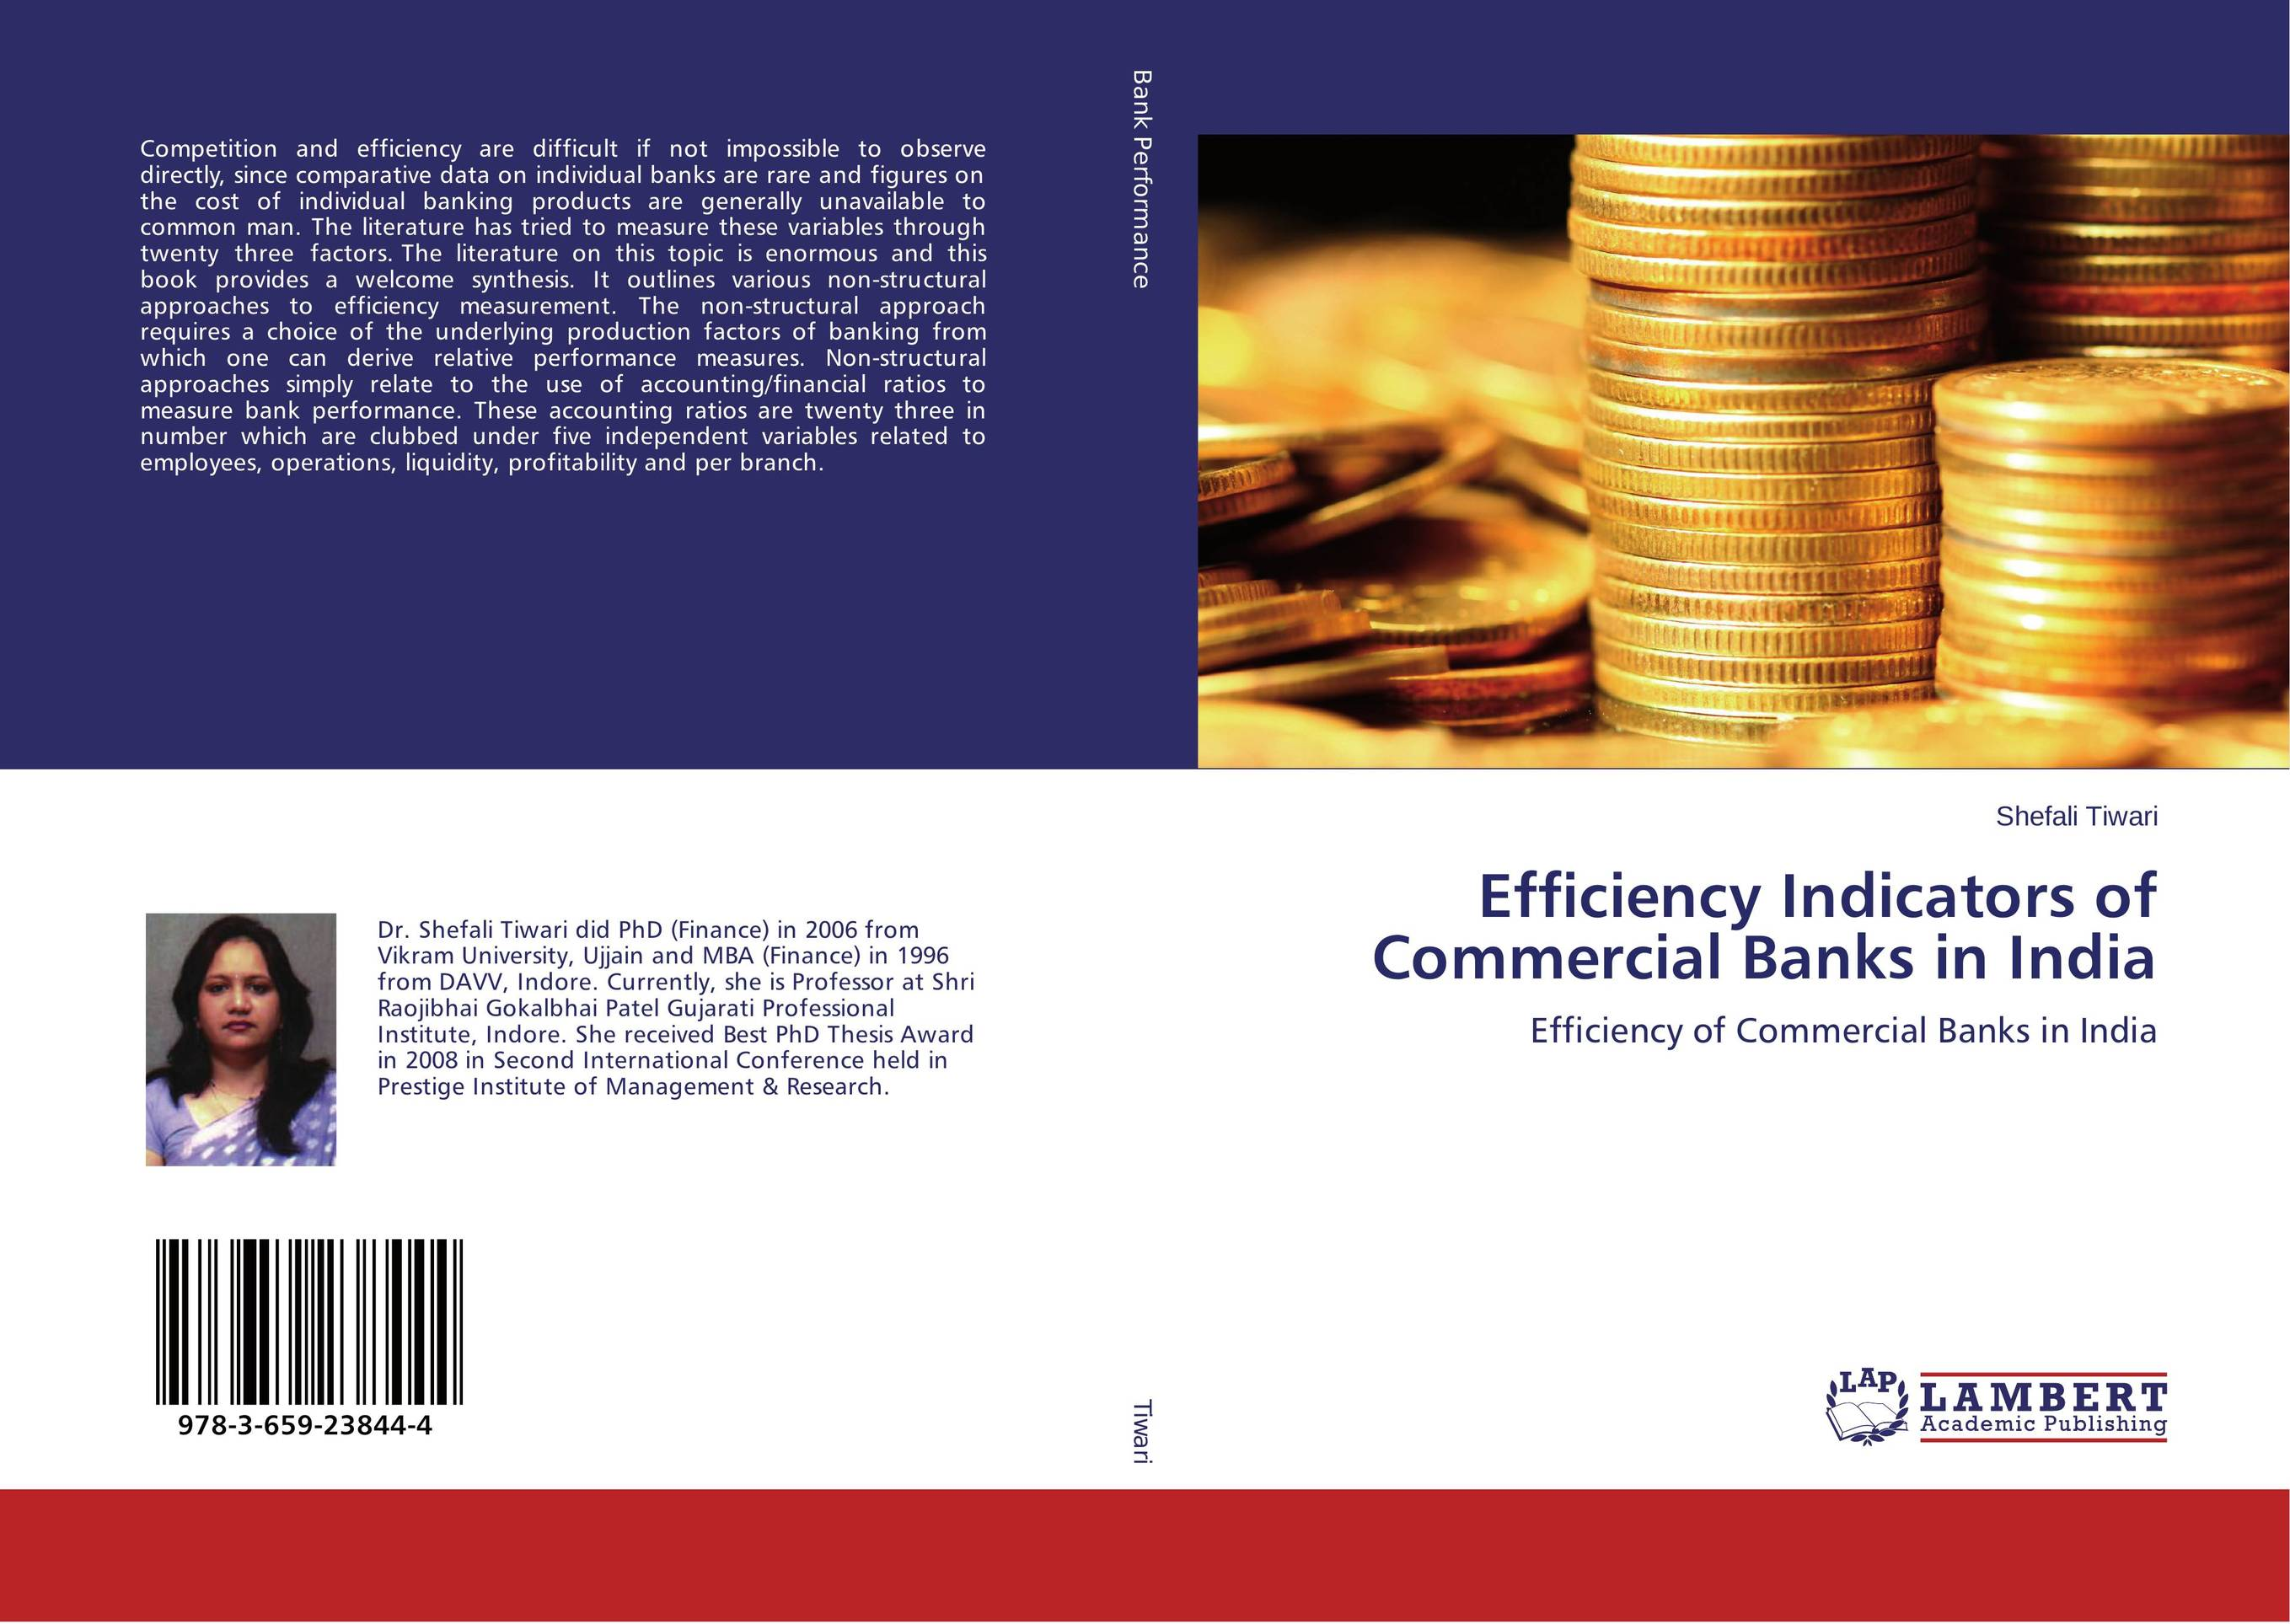 Efficiency Indicators of Commercial Banks in India david parmenter key performance indicators